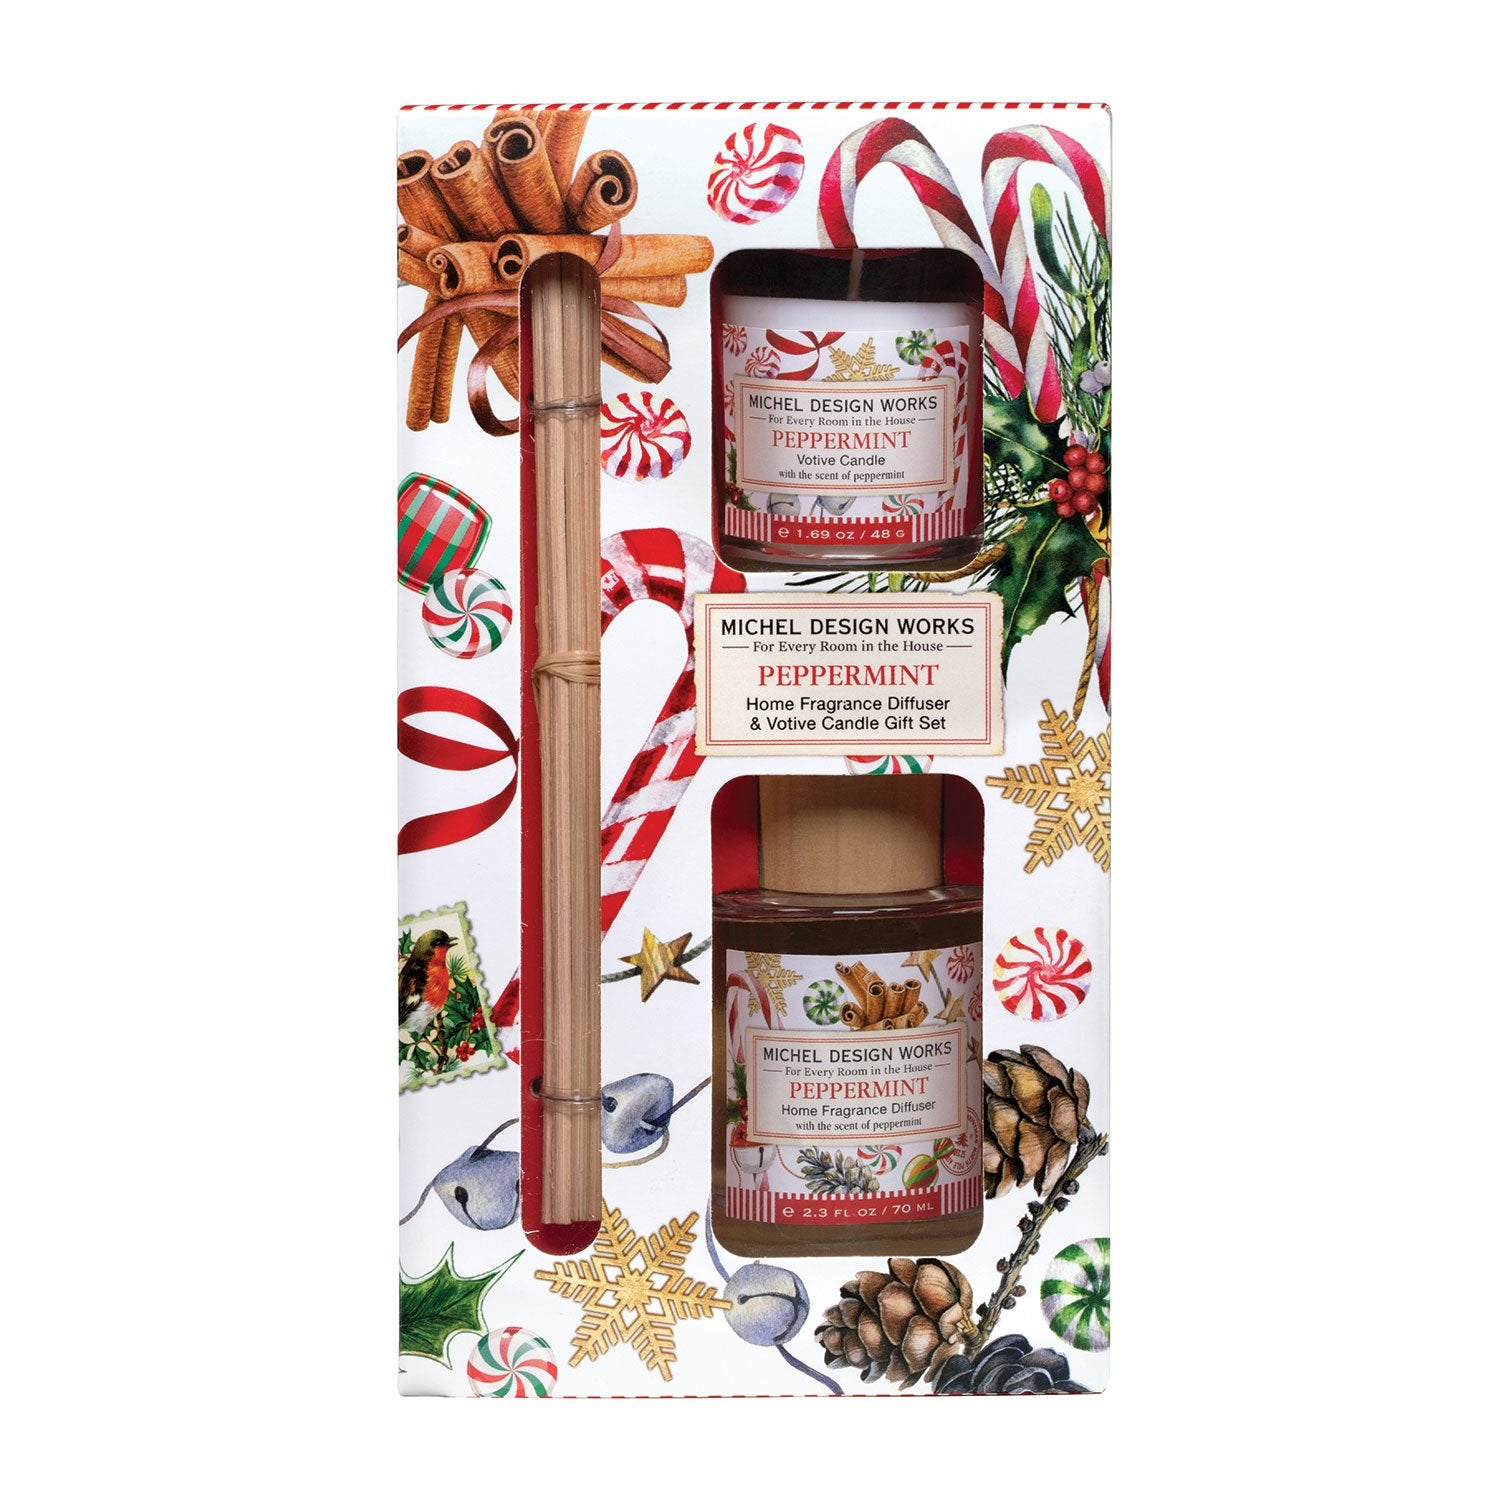 Peppermint Home Fragrance Diffuser & Votive Candle Gift Set